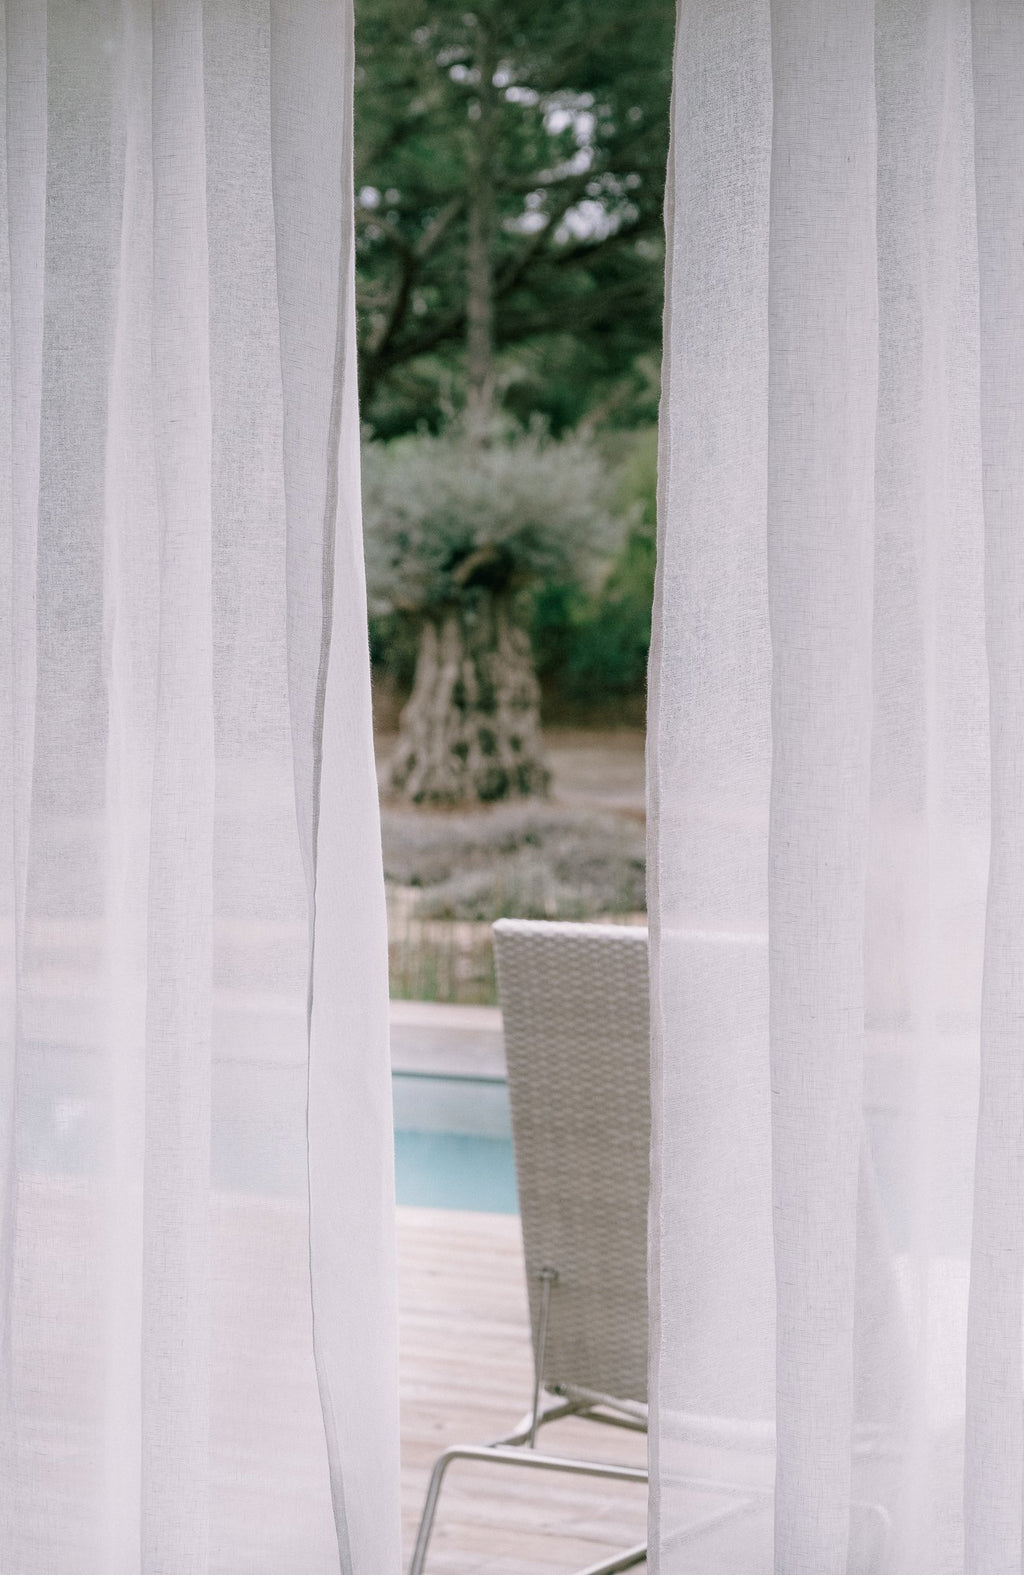 Off White Sheer Linen Curtains - Home Decor | Shop Baskets, Ceramics, Pillows, Rugs & Wall Hangs online